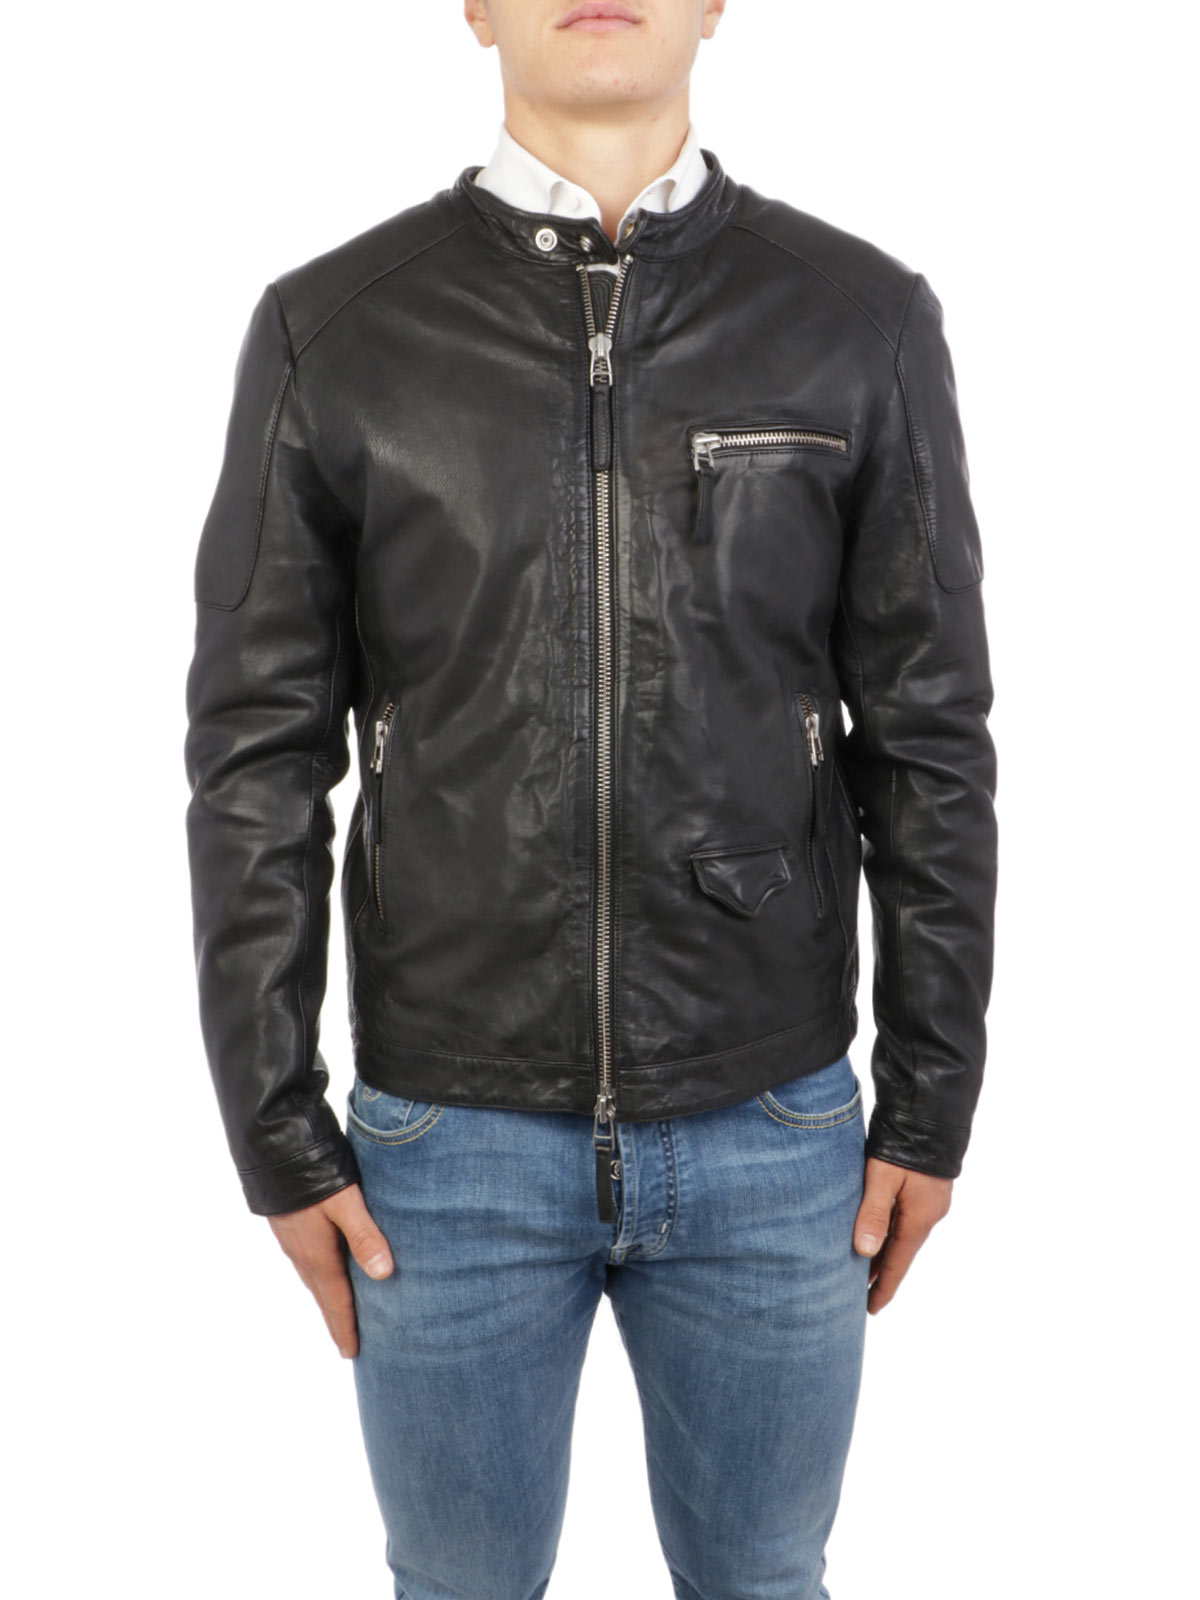 Immagine di THE JACK LEATHERS | Giacca Uomo in Pelle Bandit